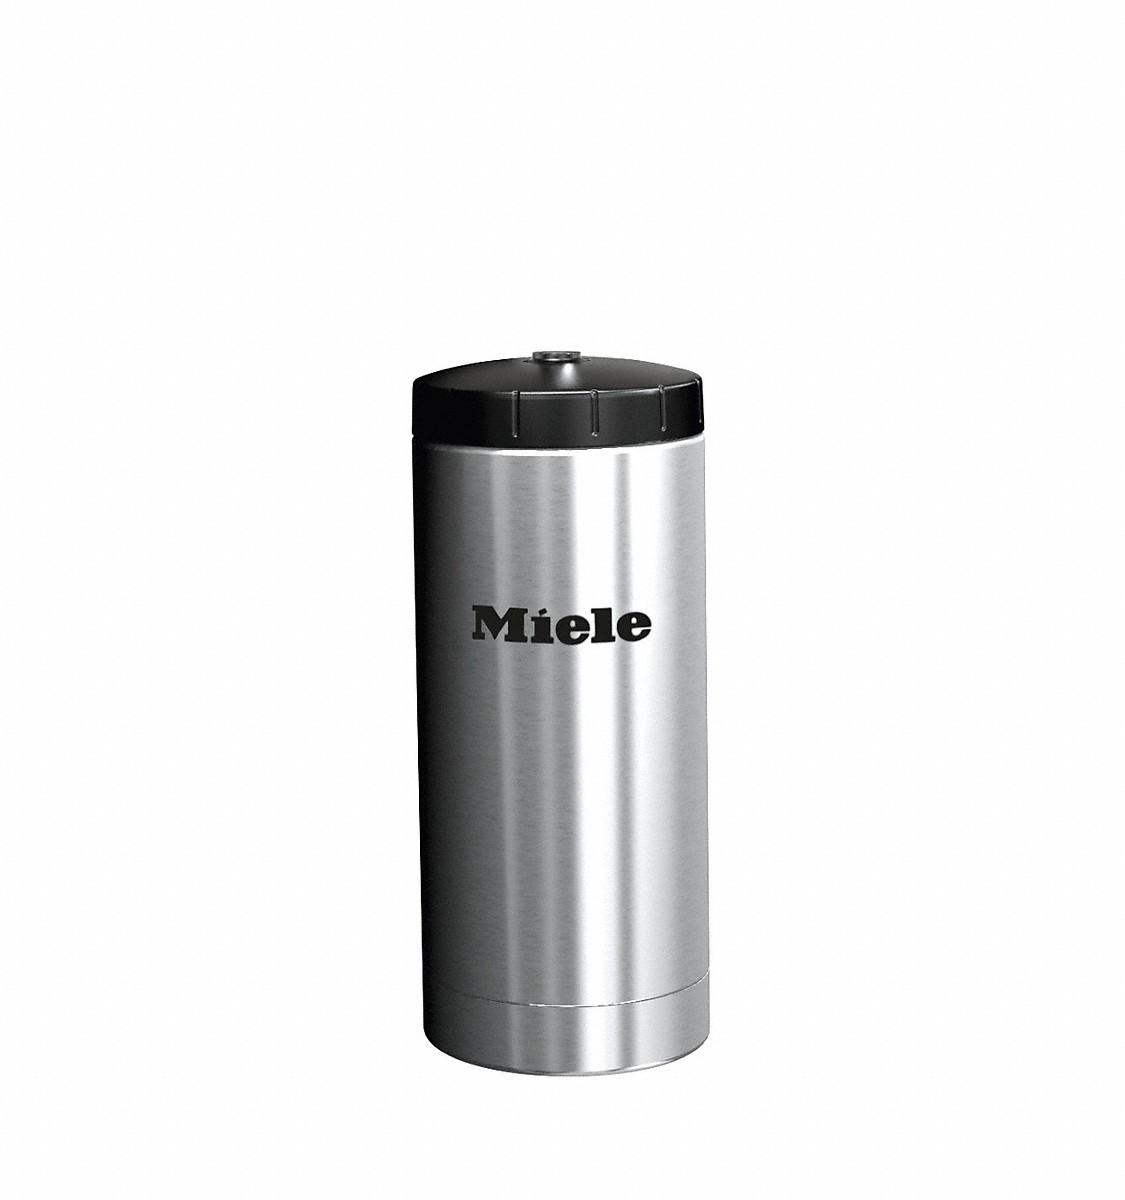 Stainless steel thermos flask 0.13 gallonfor smooth and creamy milk froth